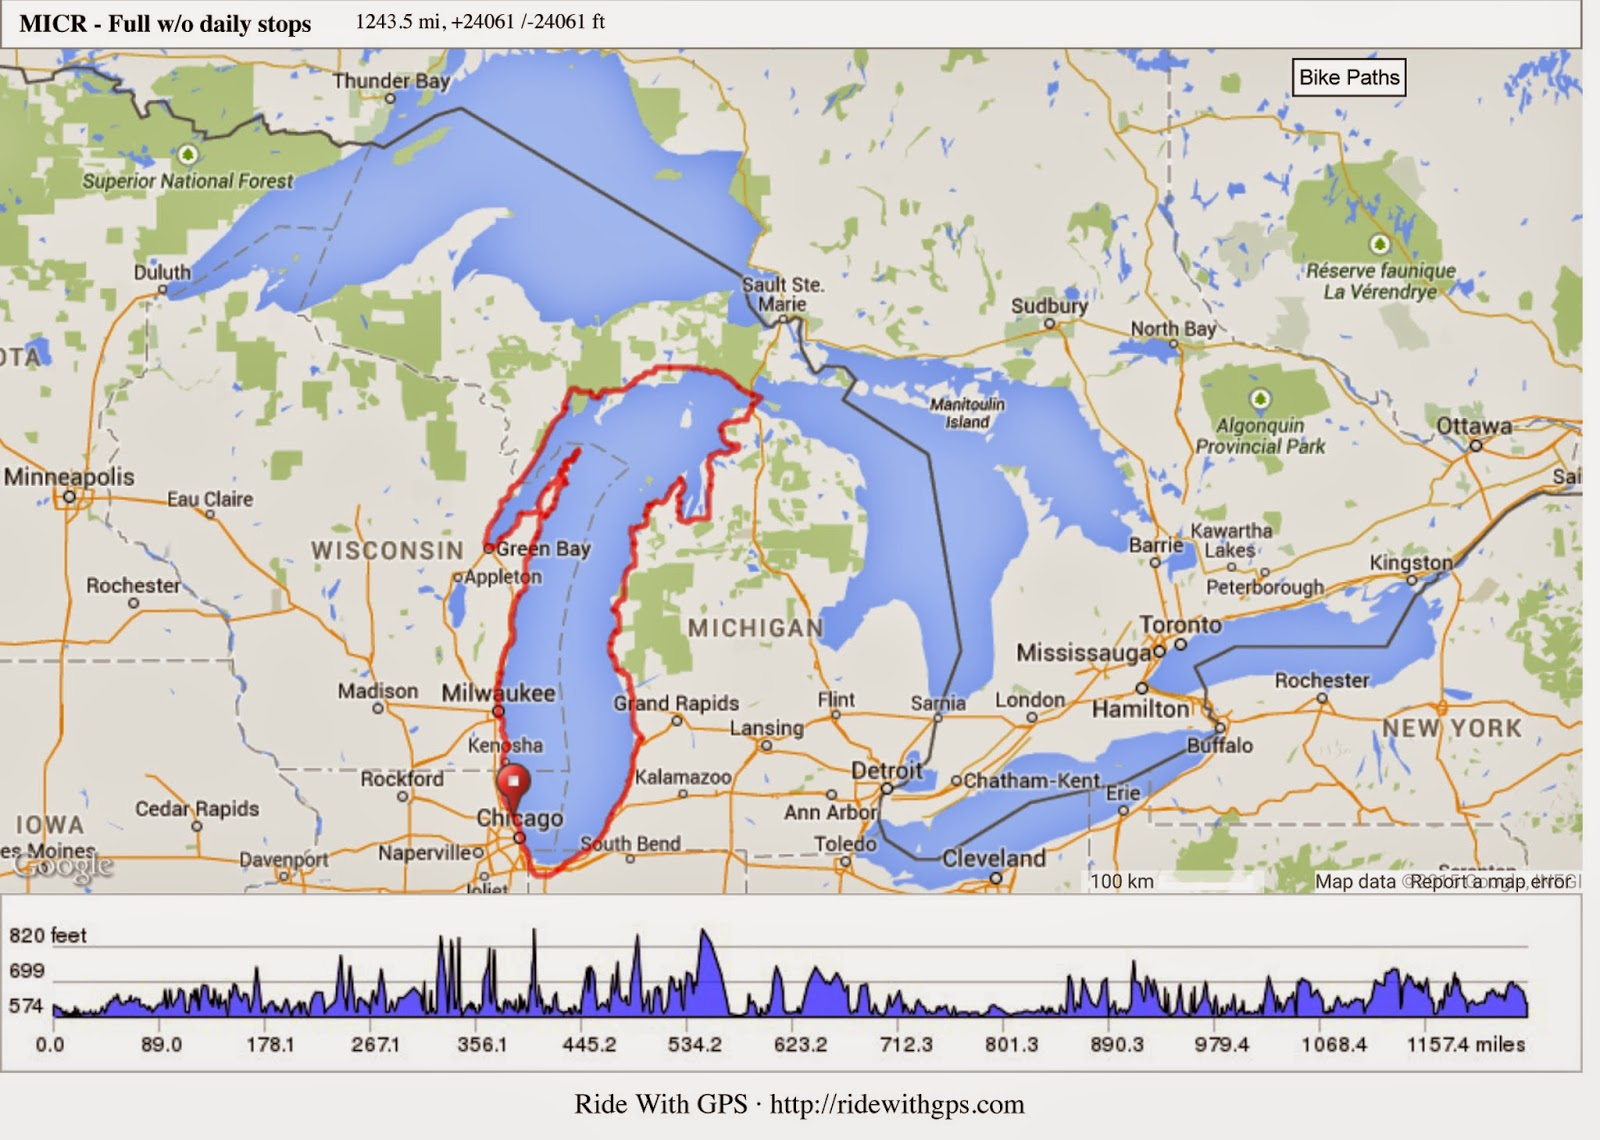 an overview of our challenge 1 350 miles 24 061 feet of climbing and descending of course its a circle afterall